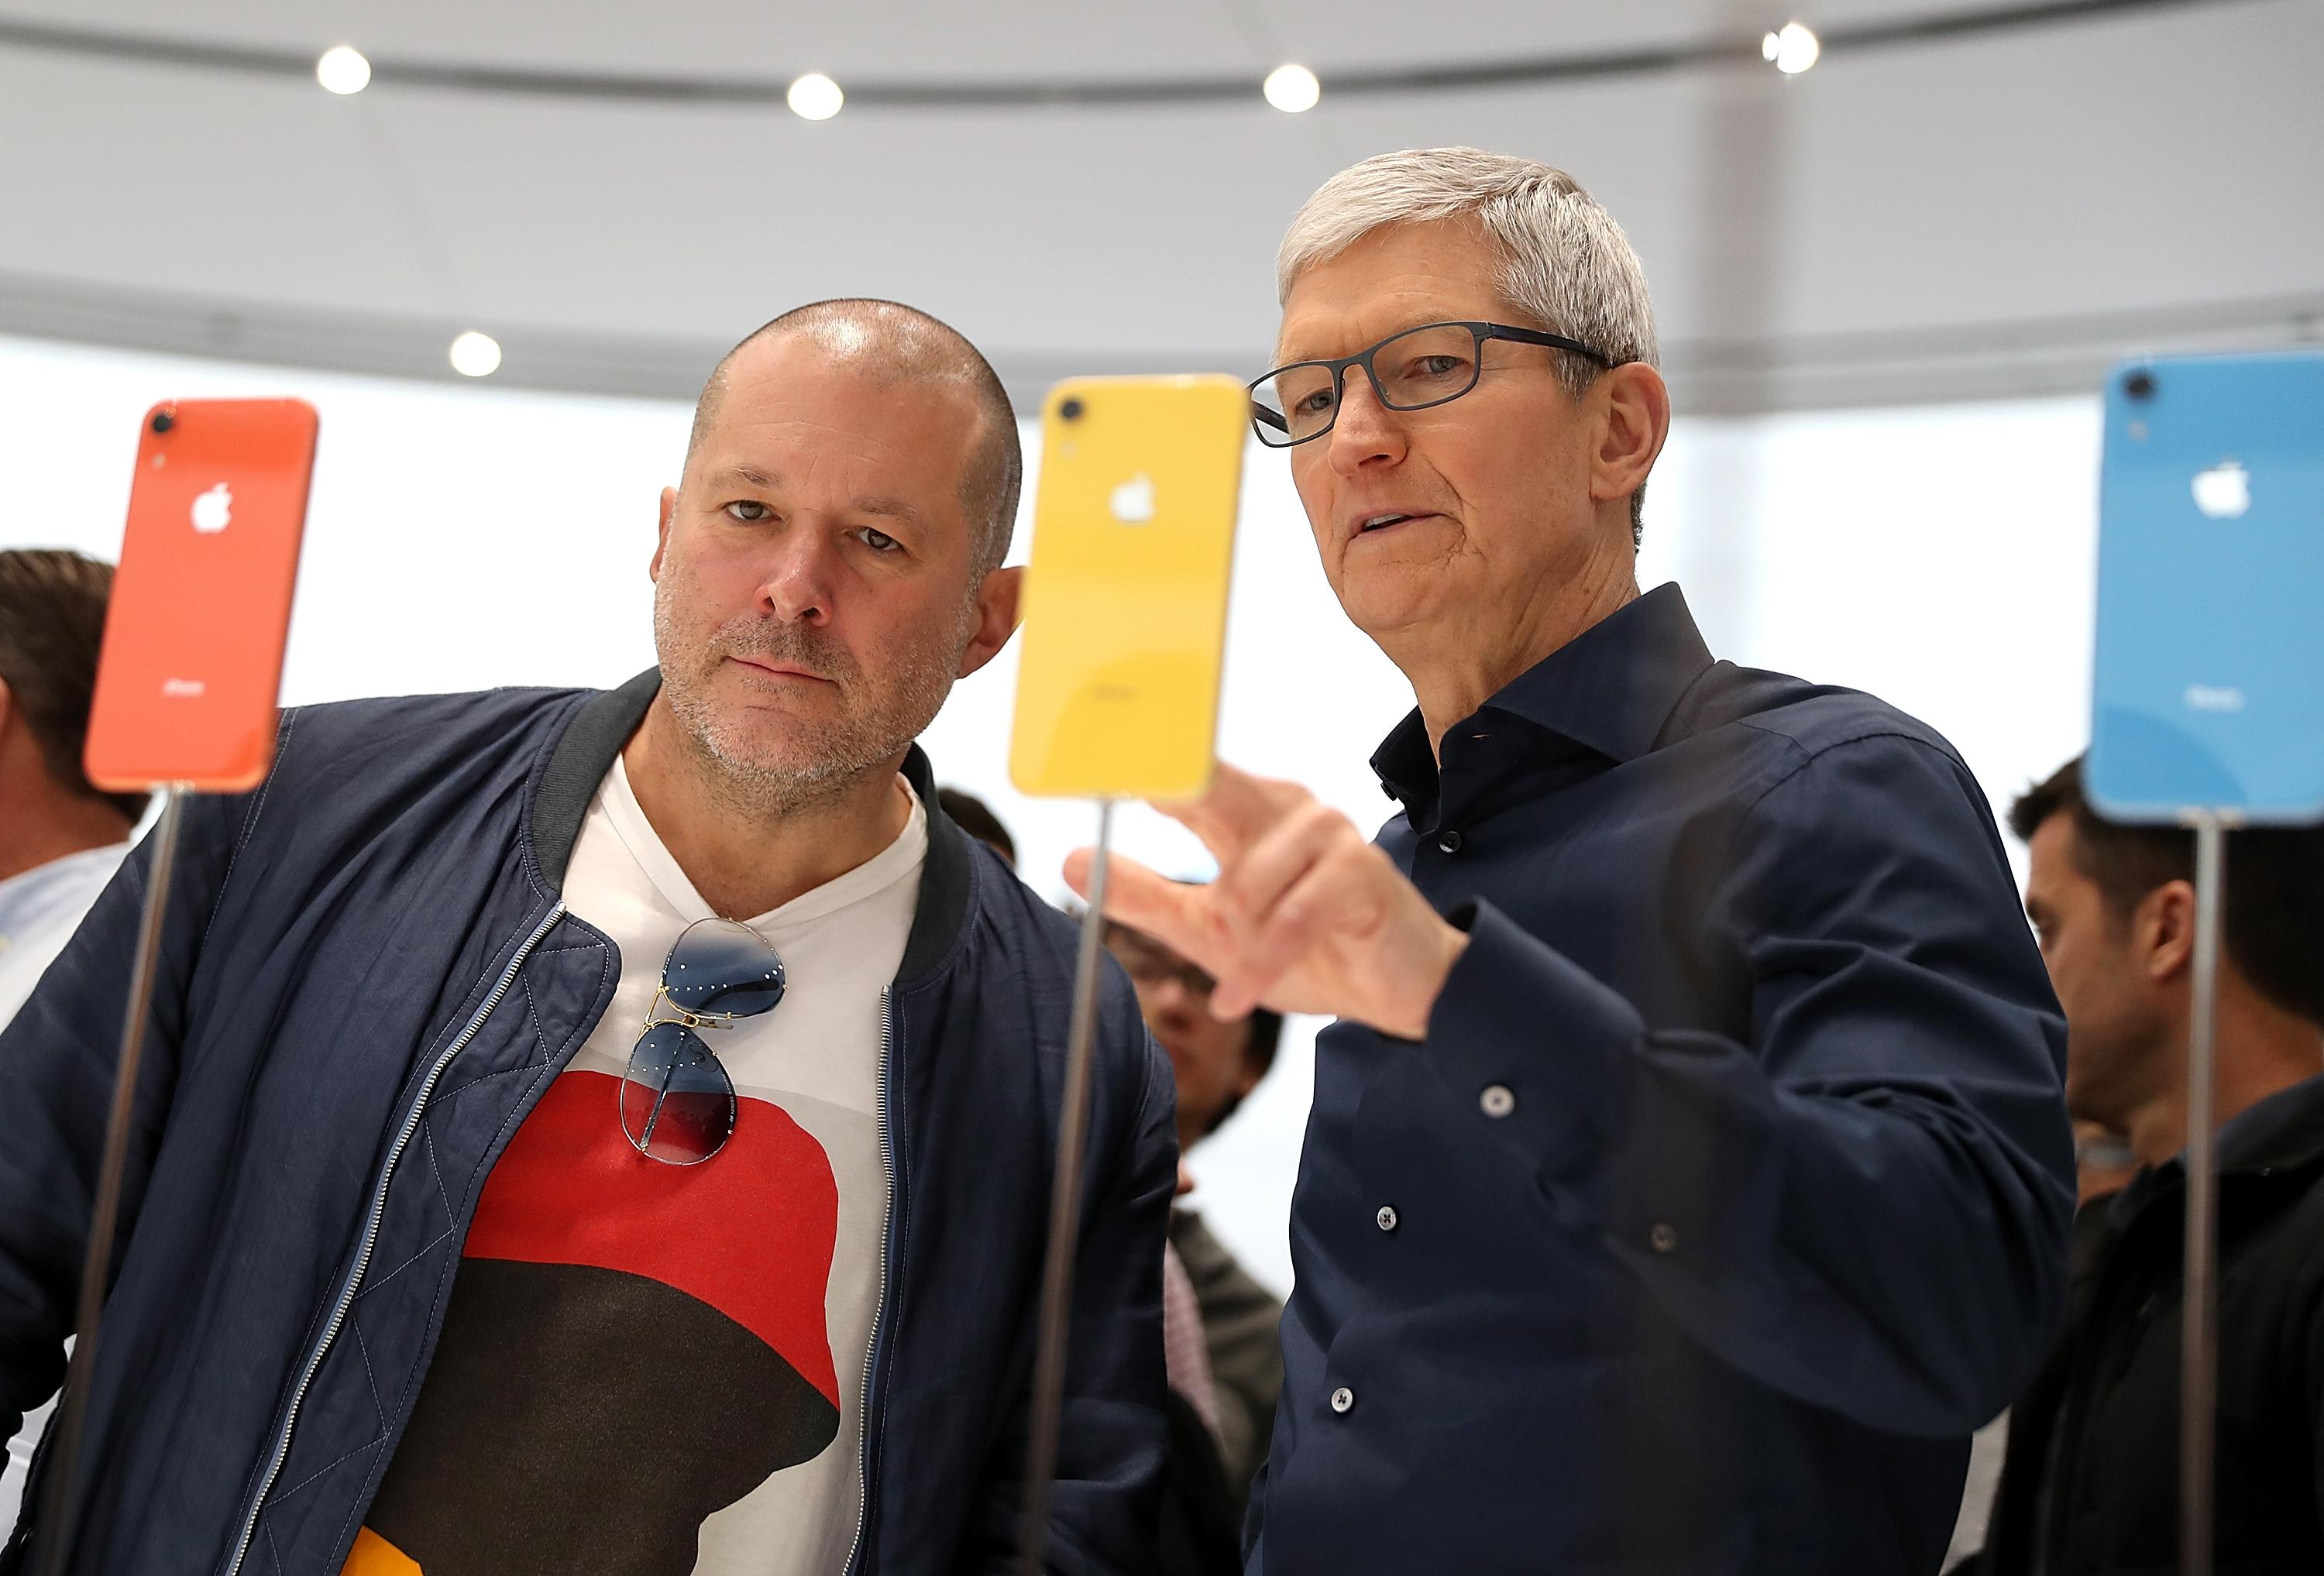 Apple ramped up design hiring ahead of Jony Ive's exit: Thinknum